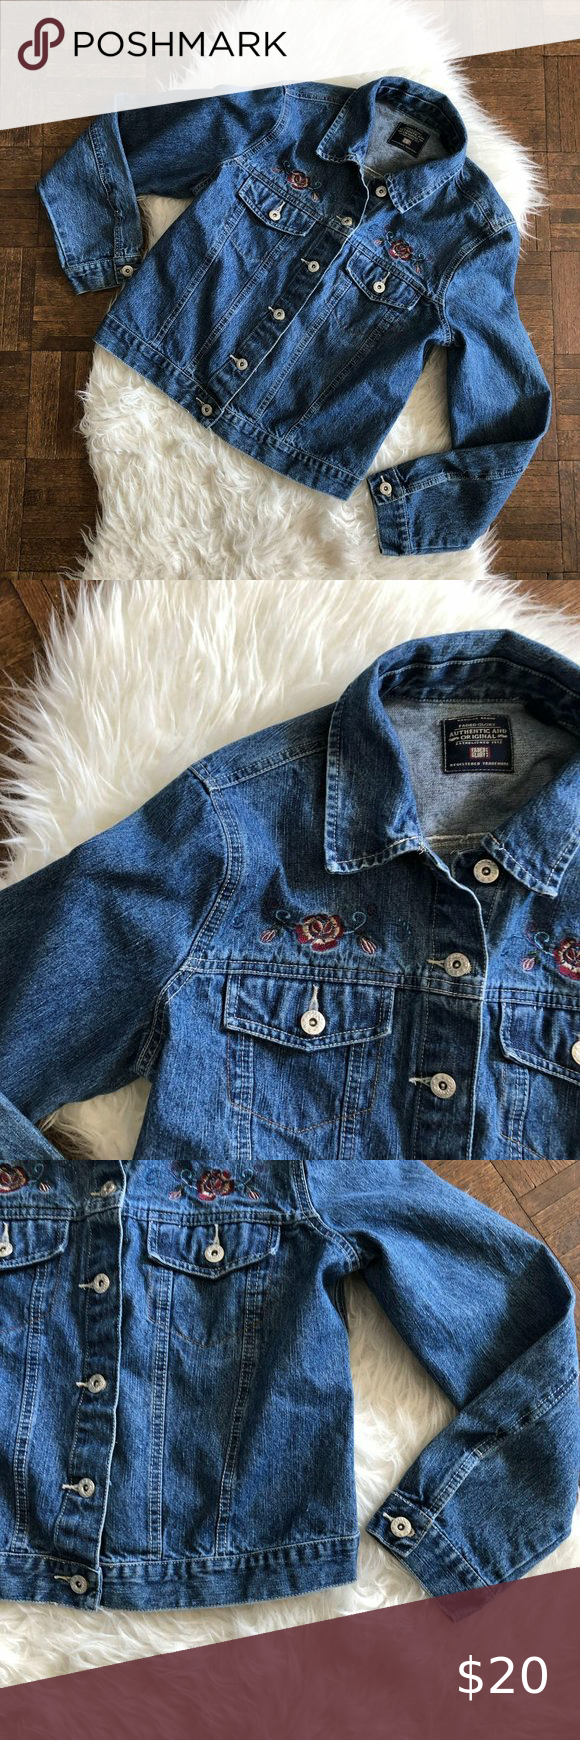 Faded Glory Medium Blue Jean Jacket Embroidered Brand Faded Glory Color Style Blue Jean Denim Jacket W Floral Embr Blue Jean Jacket Jean Jacket Blue Jeans [ 1740 x 580 Pixel ]